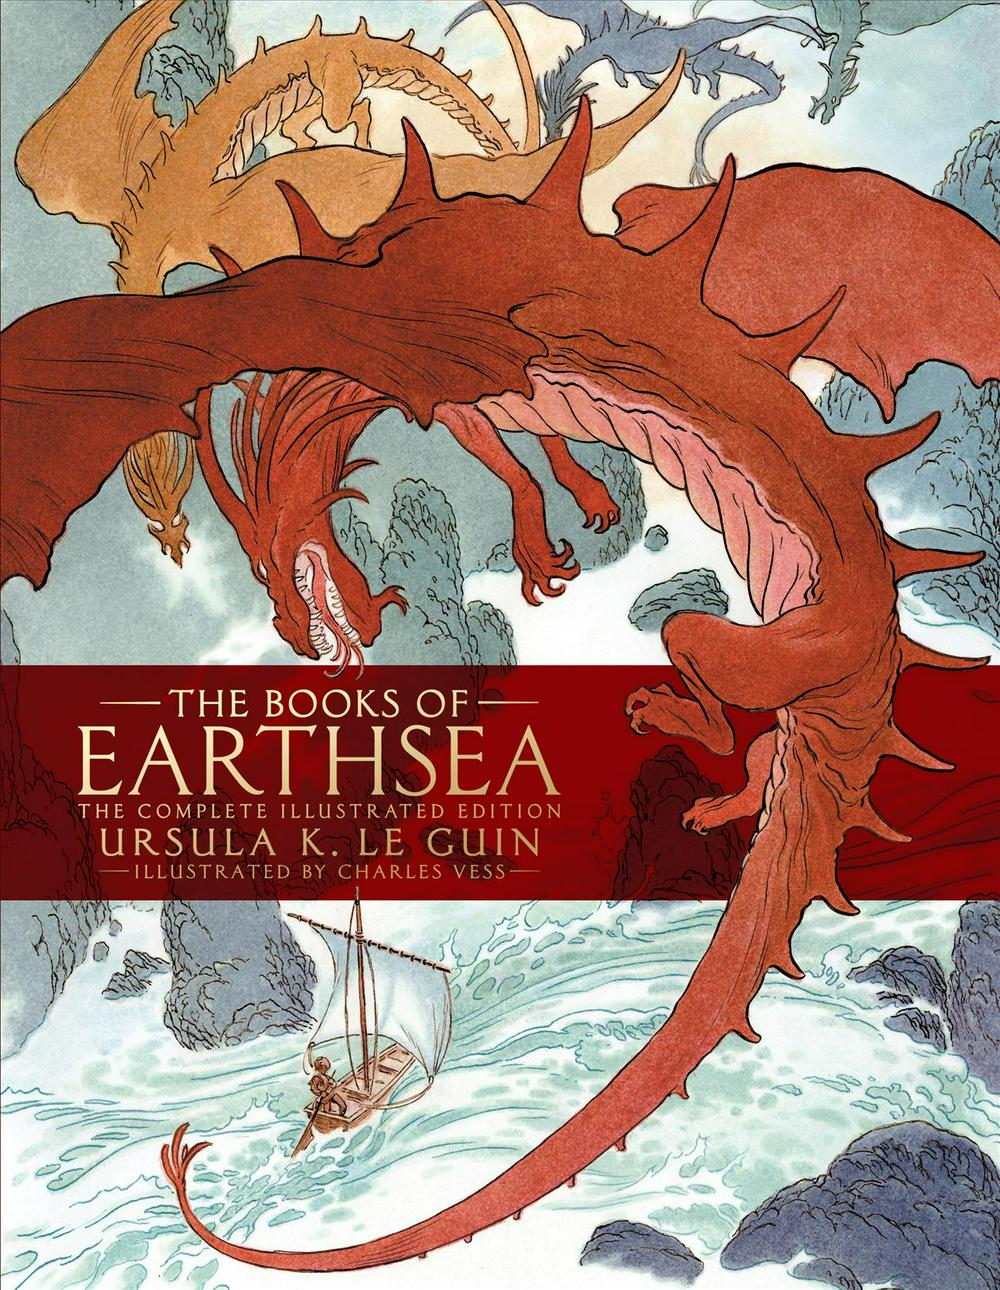 The Books of Earthsea: The Complete Illustrated Edition (Earthsea Cycle)